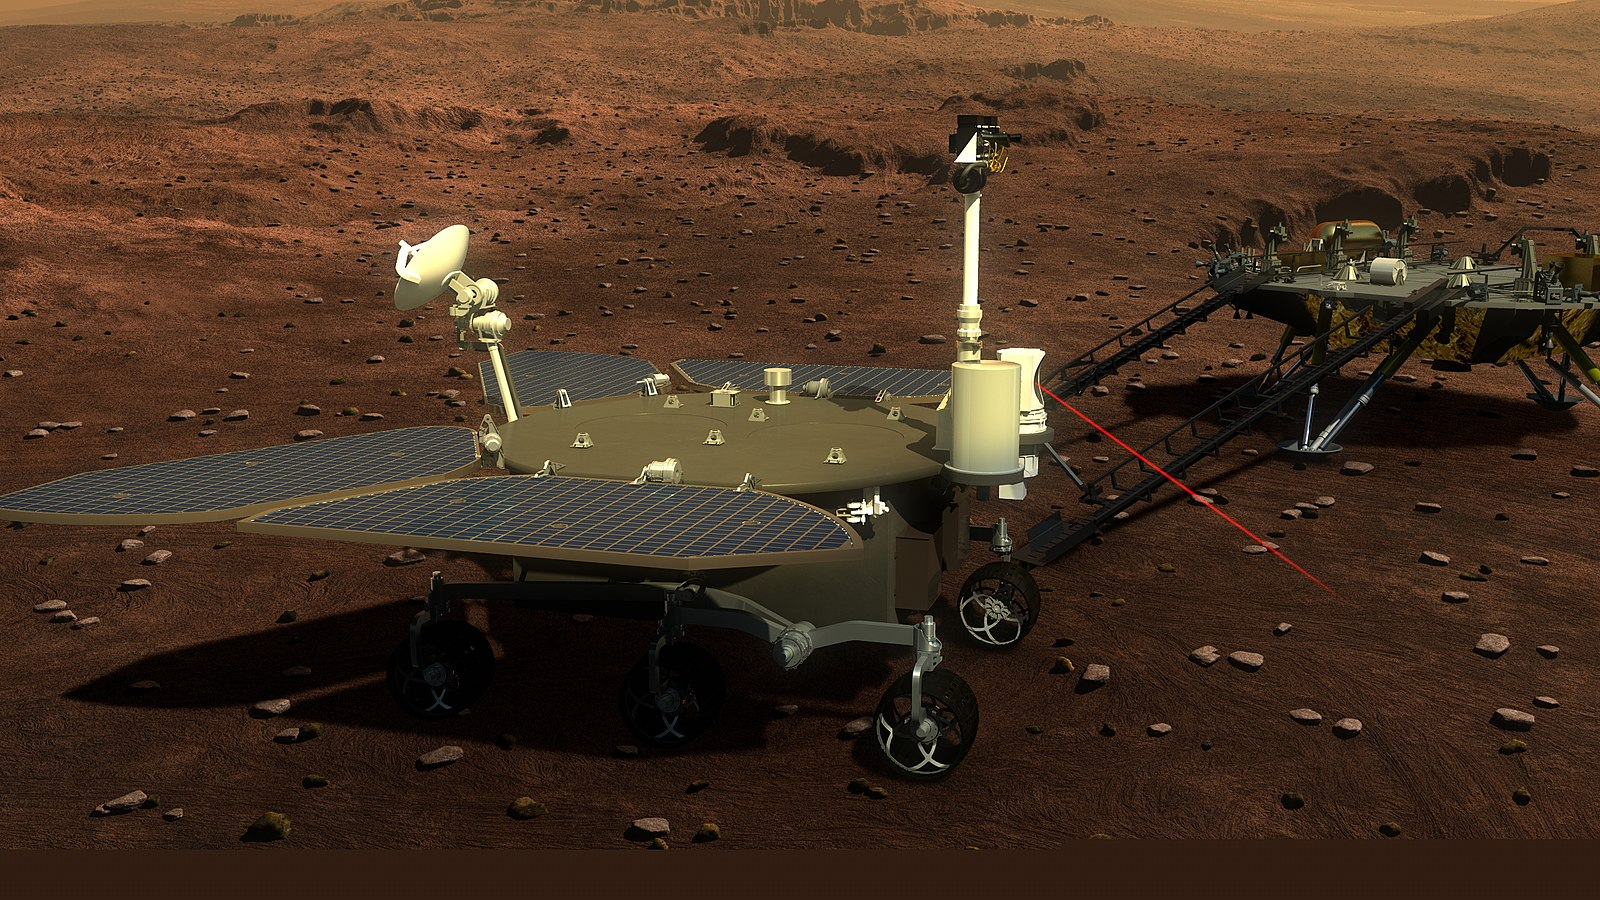 Illustration by an artist depicting the Mars rover in the Tianwen-1 mission.  Illustration: China National Space Agency